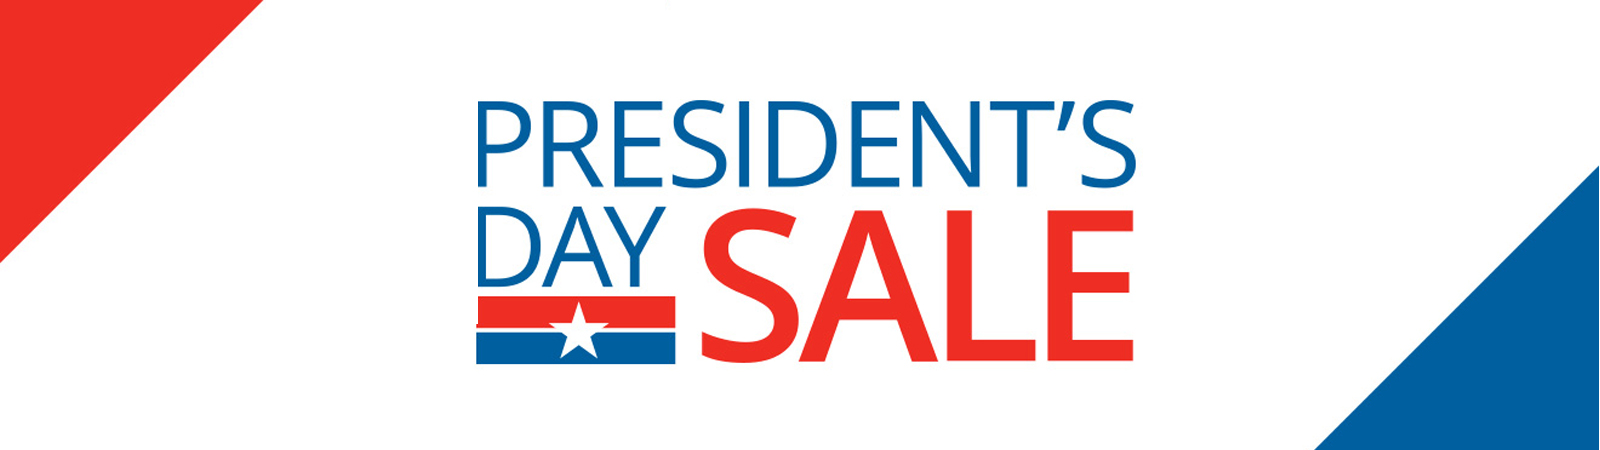 President Day Sales